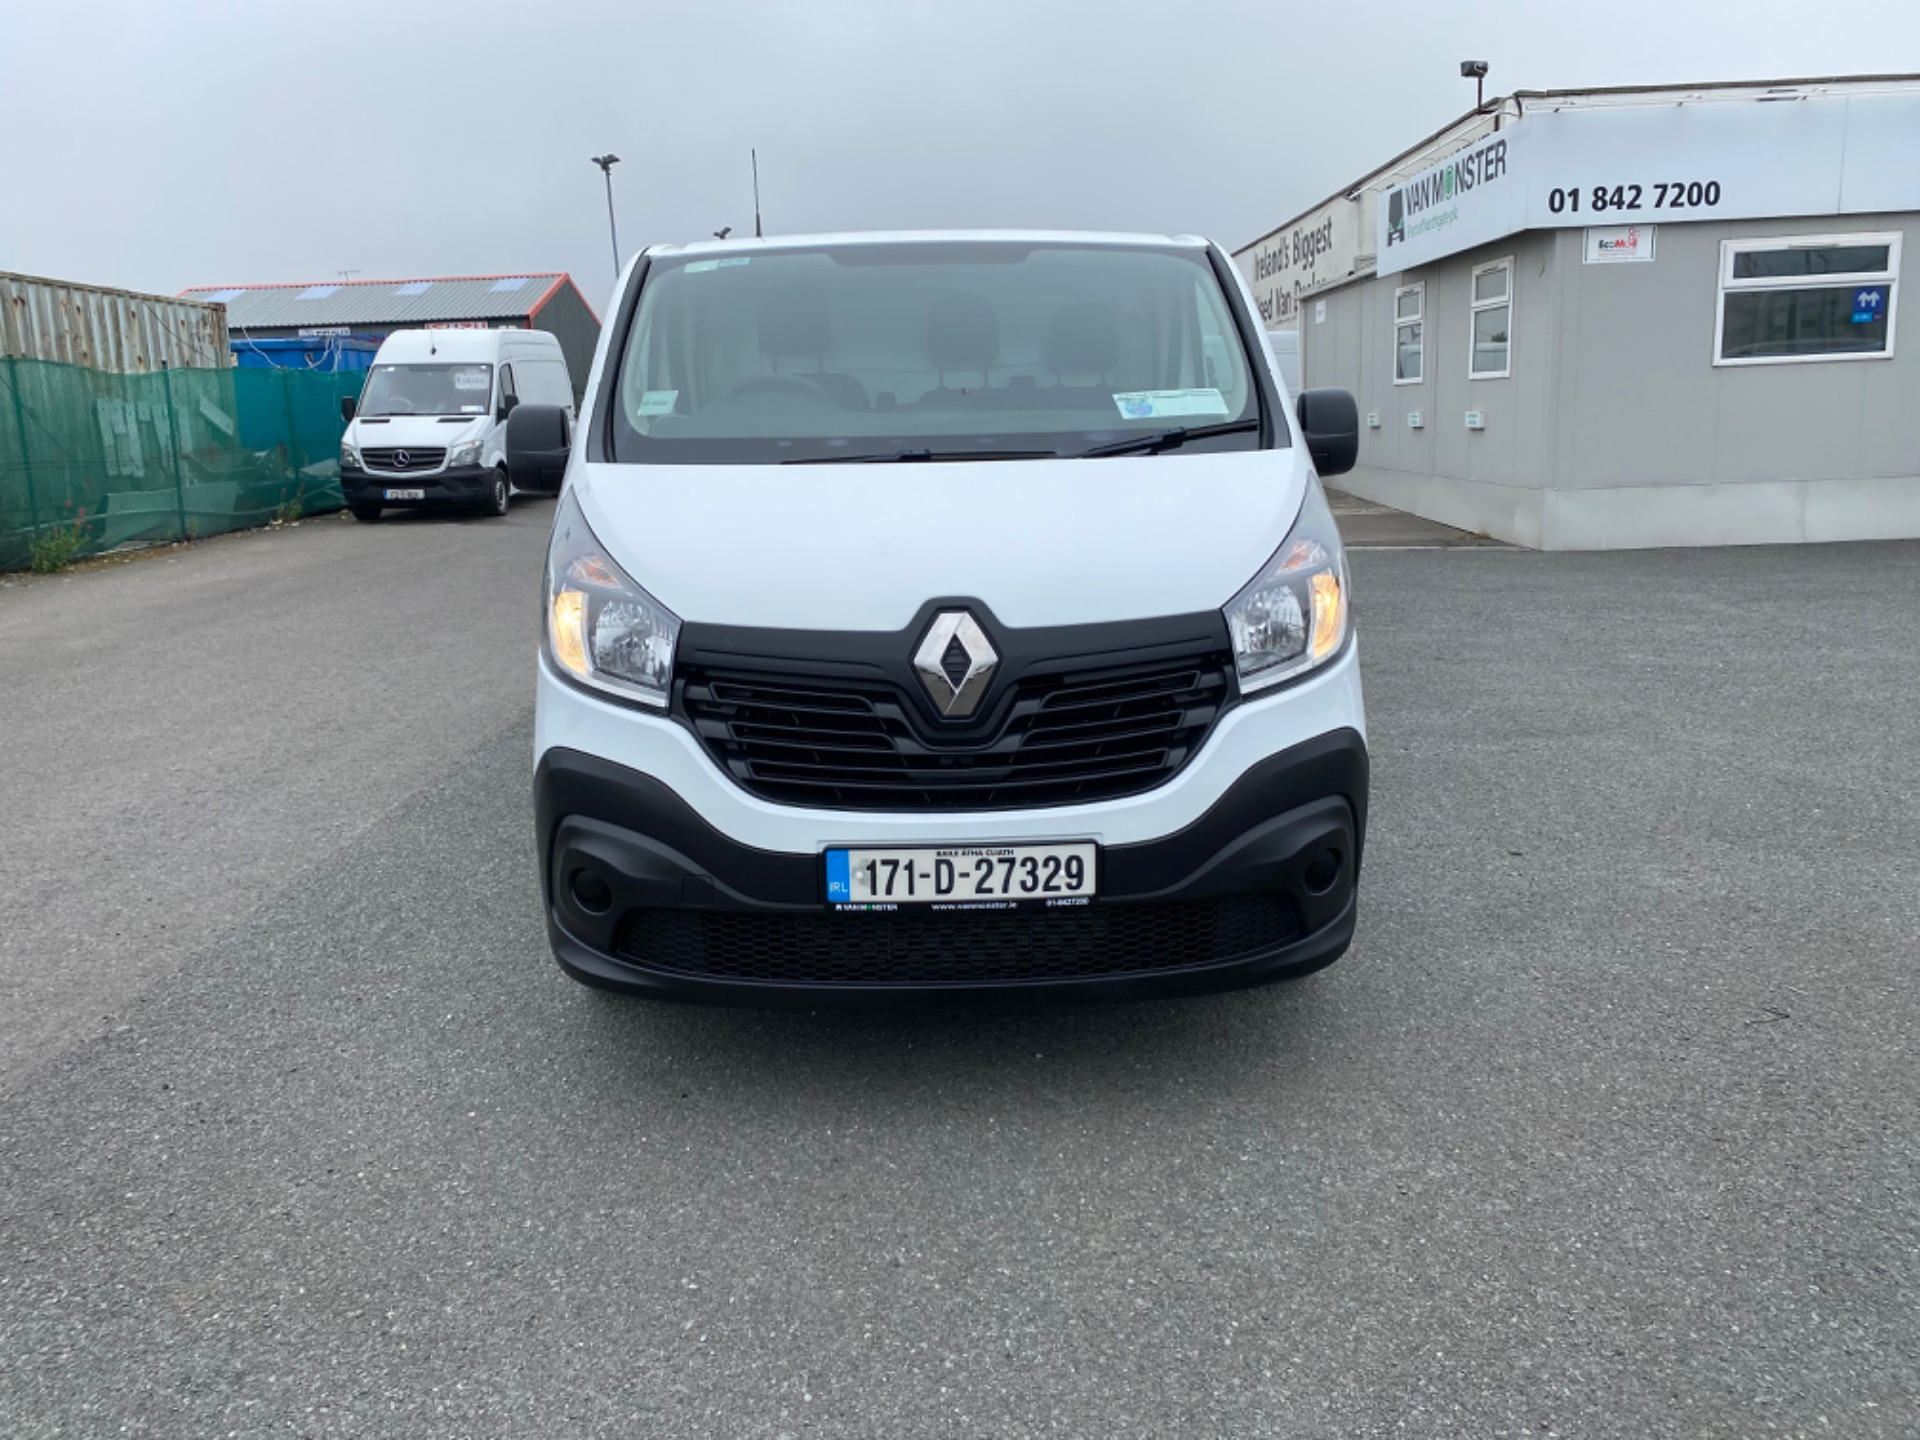 2017 Renault Trafic LL29 DCI 120 Business 3DR (171D27329) Image 1